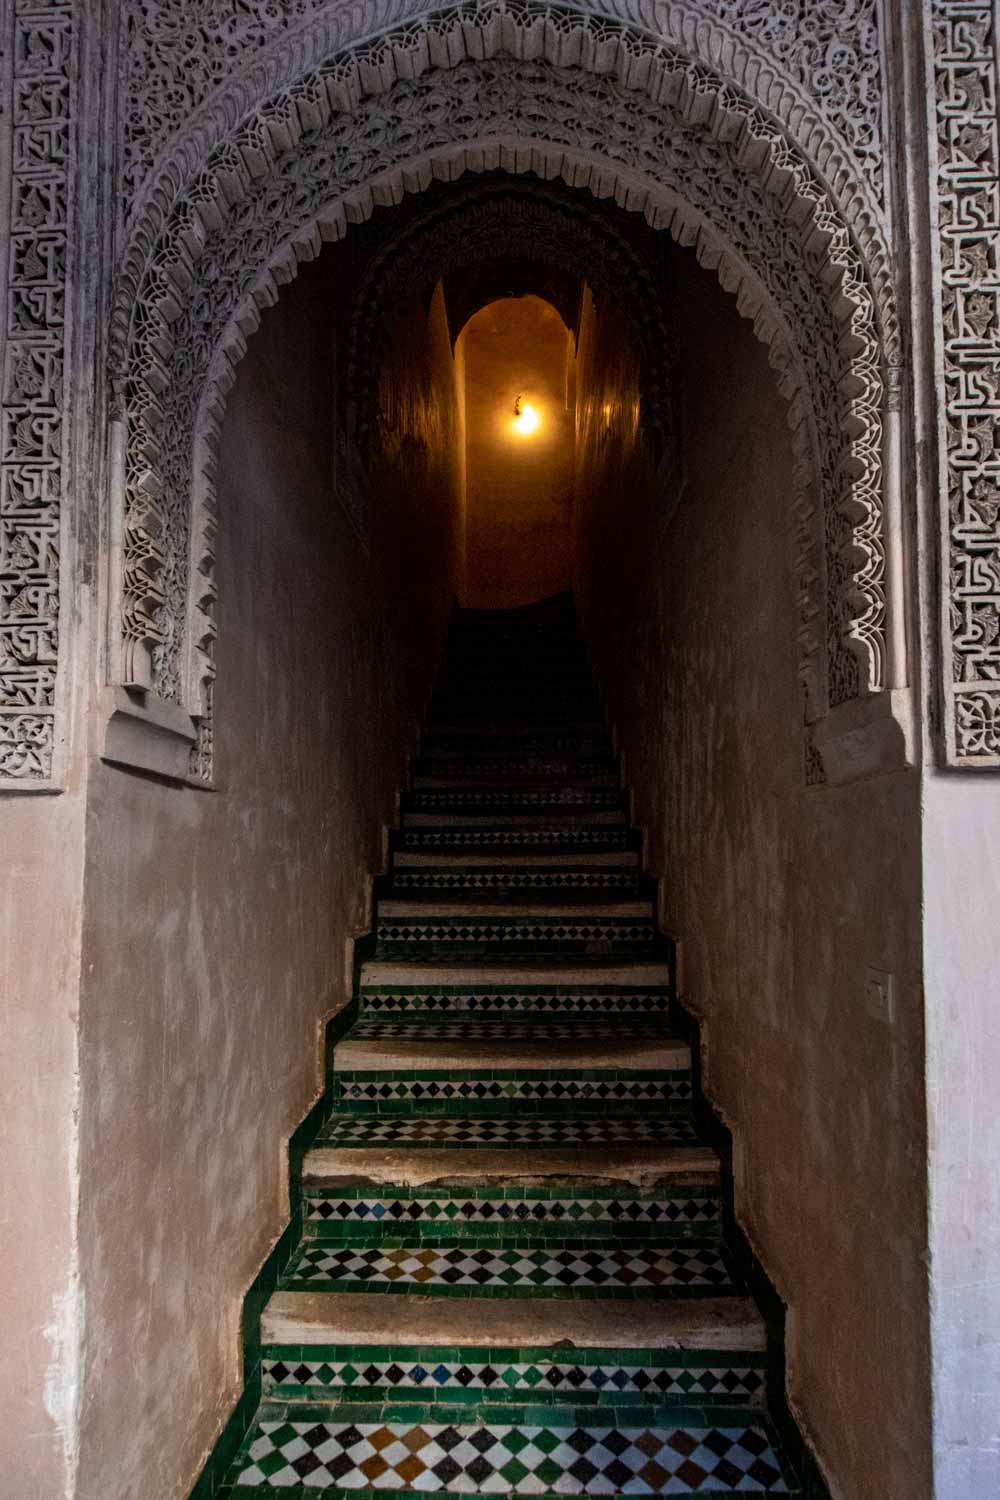 two days in fes - into the rabbit hole